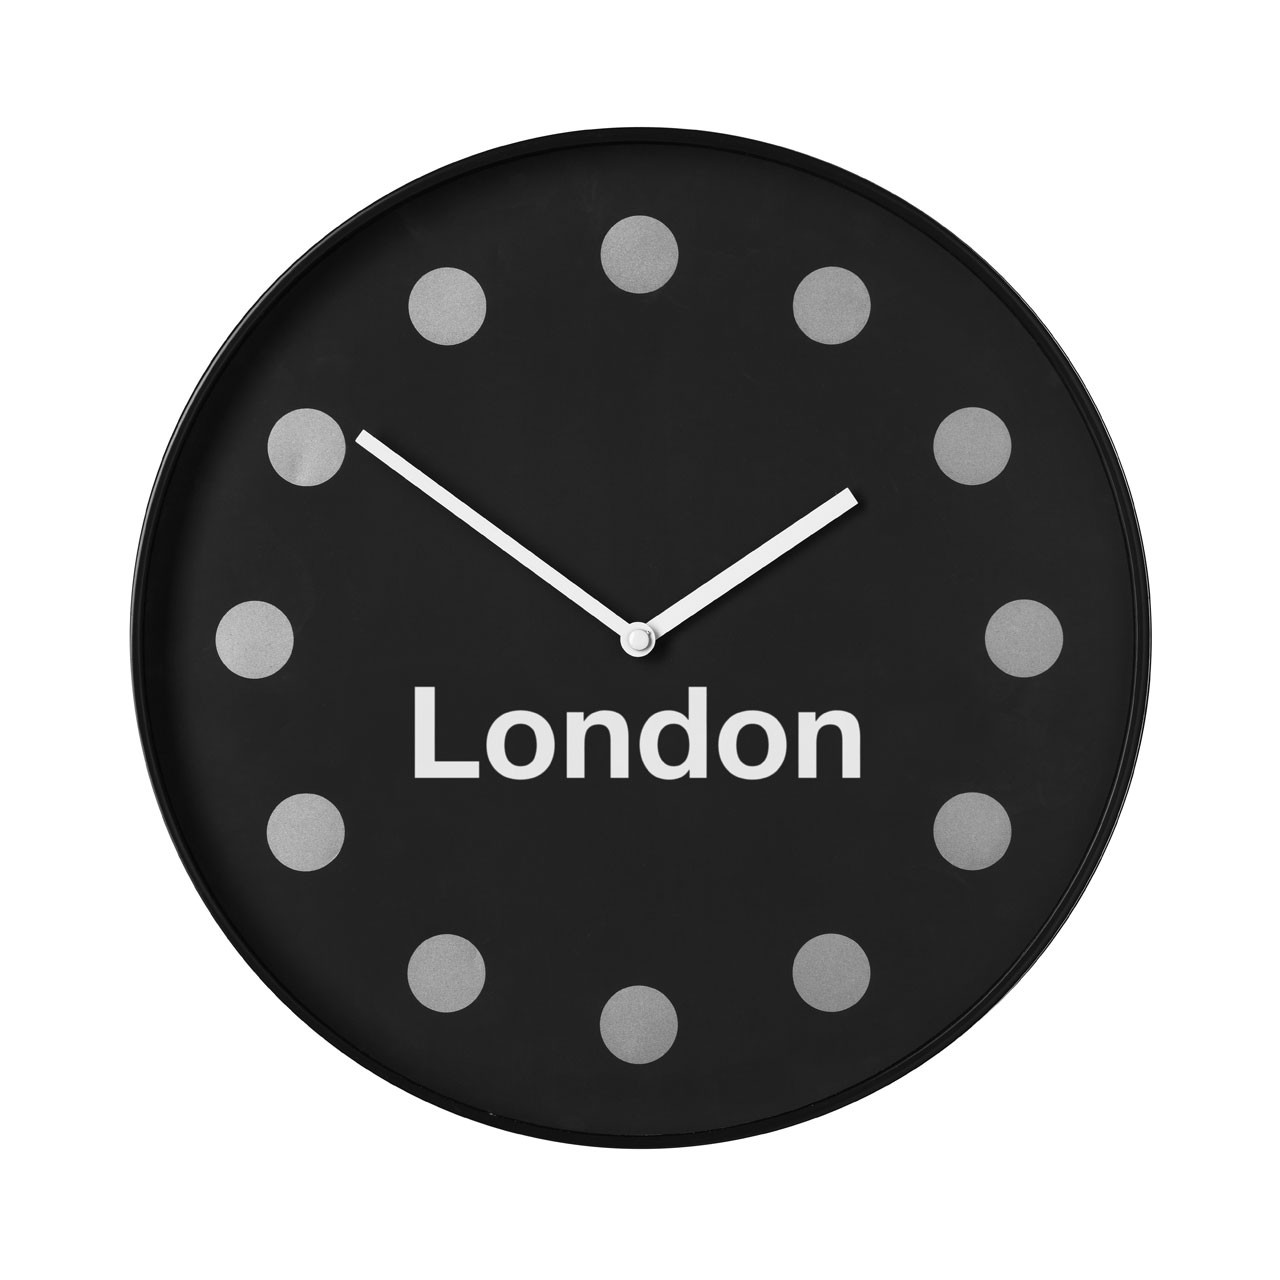 Prime Furnishing London Wall Clock